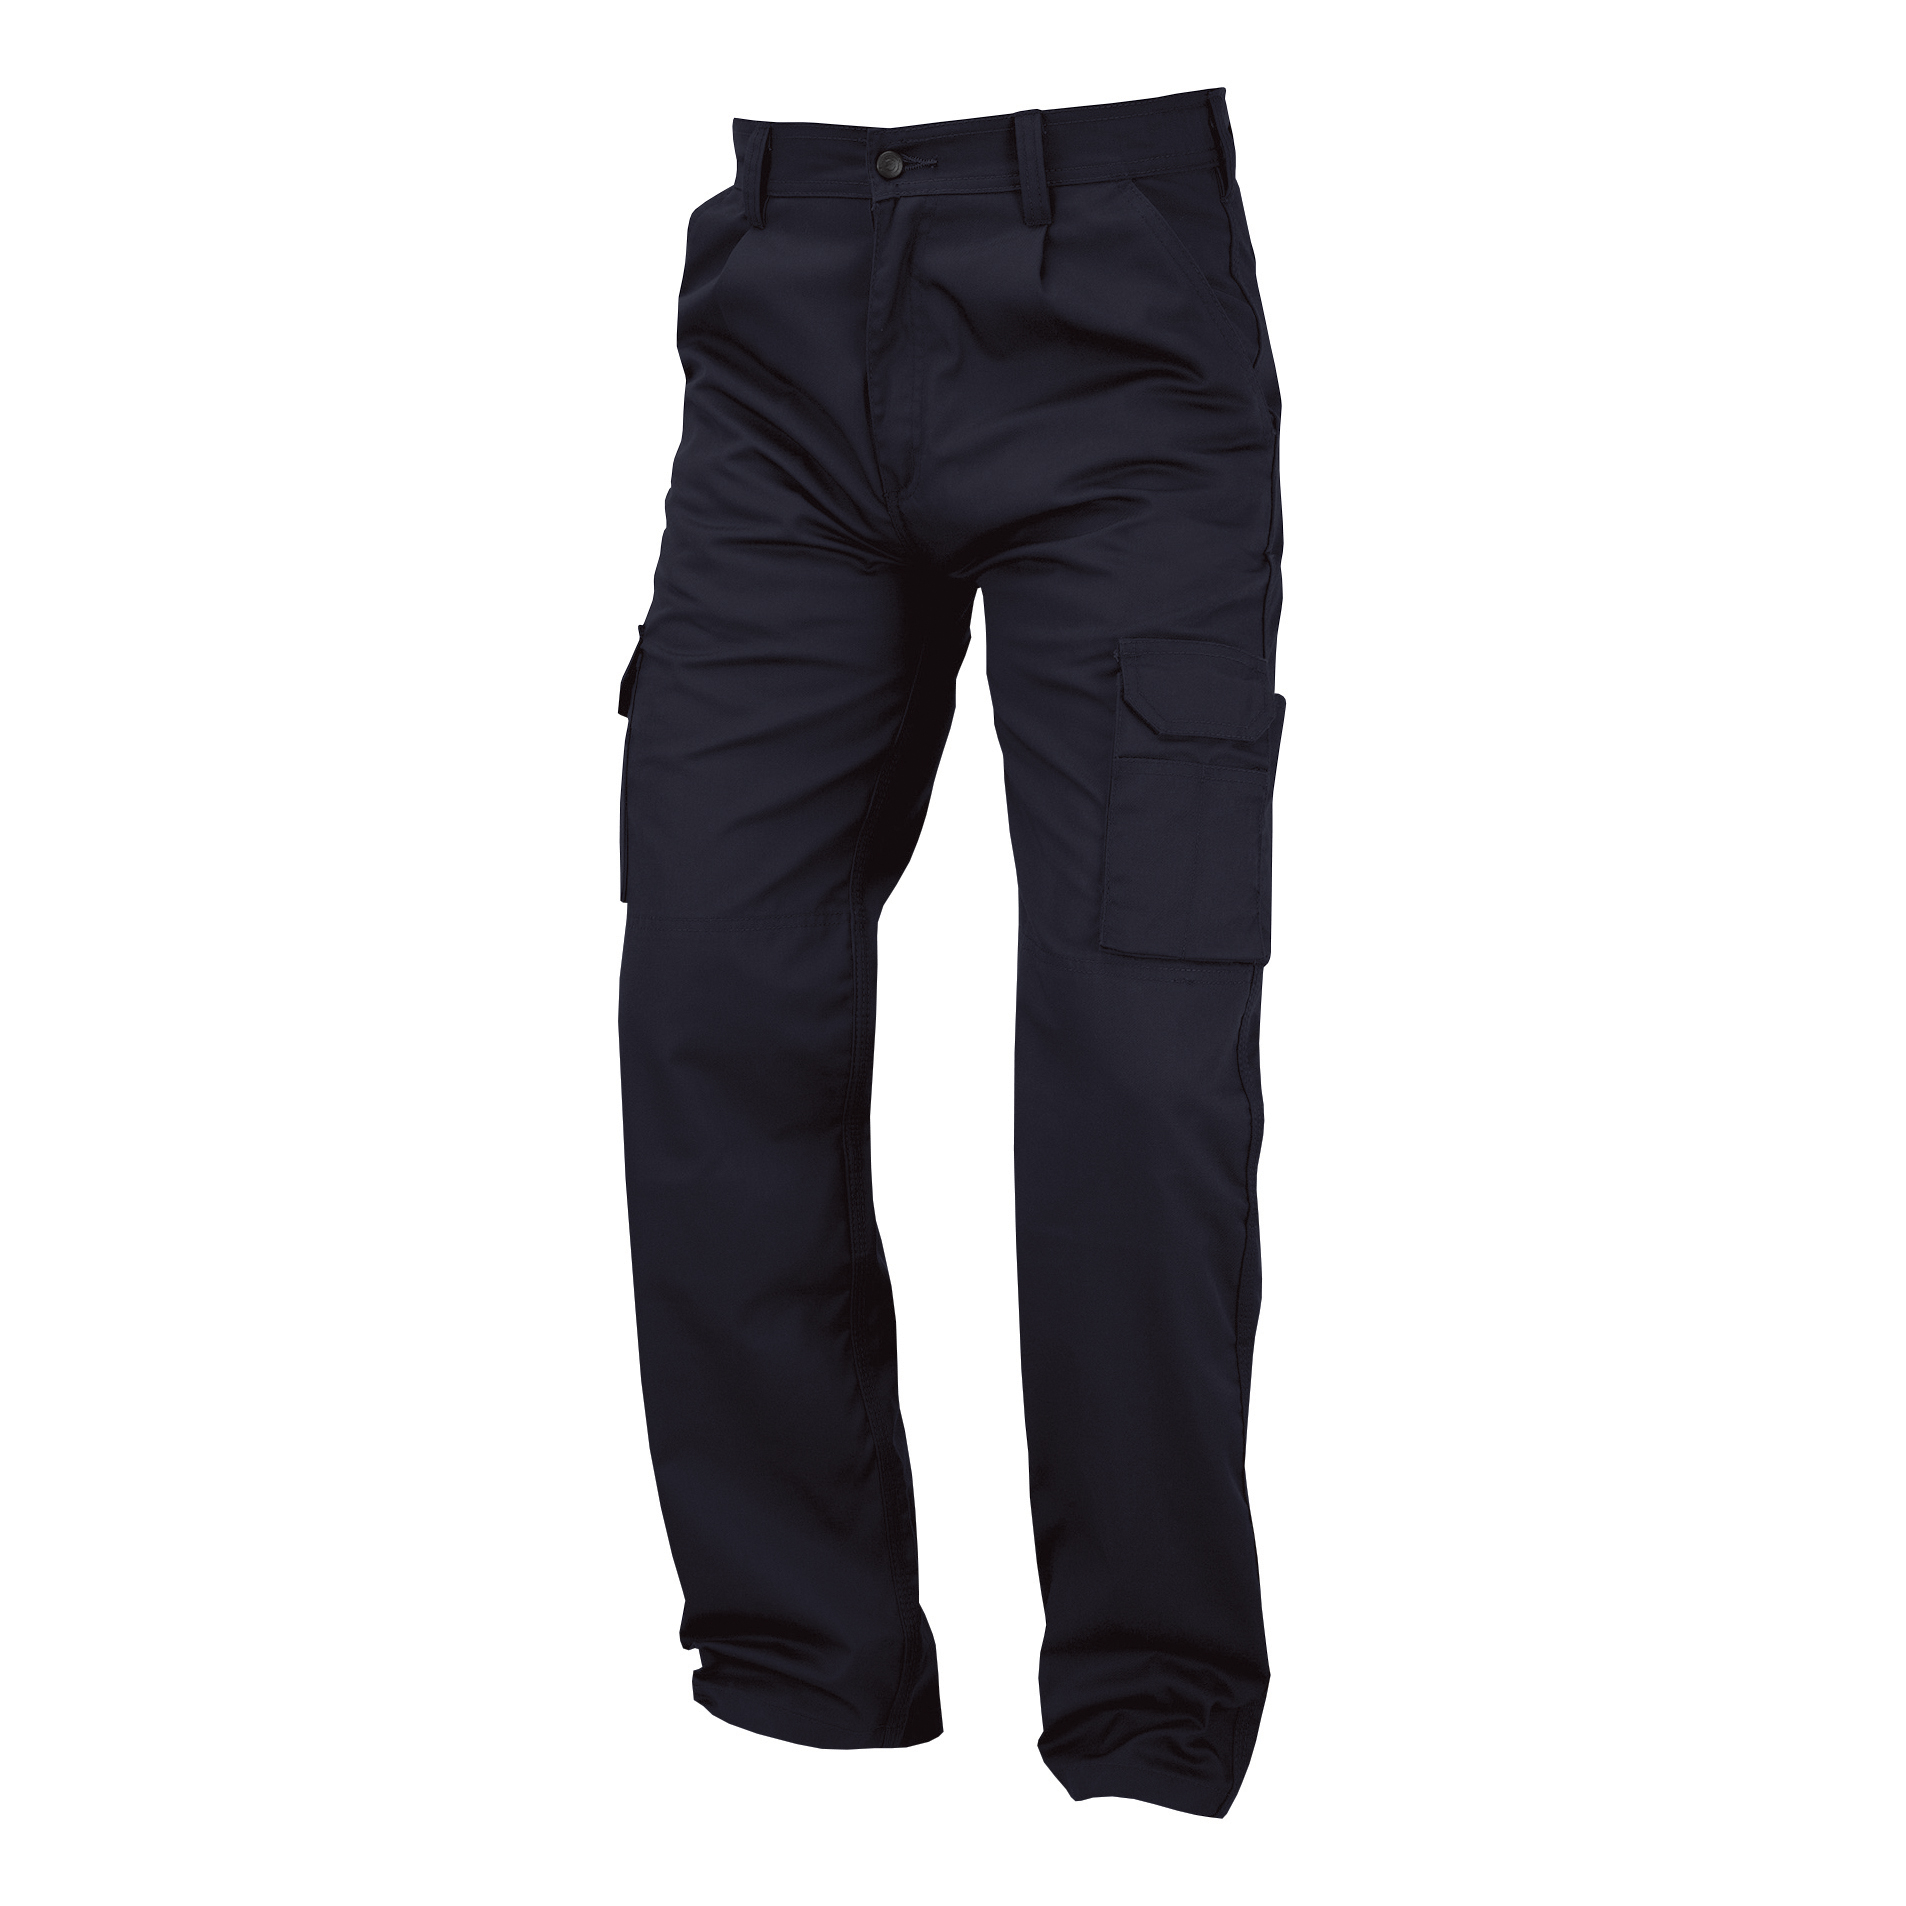 Combat Trouser Multi-functional Waist 28in Leg 29in Navy PCTHWN28S *Approx 3 Day Leadtime*